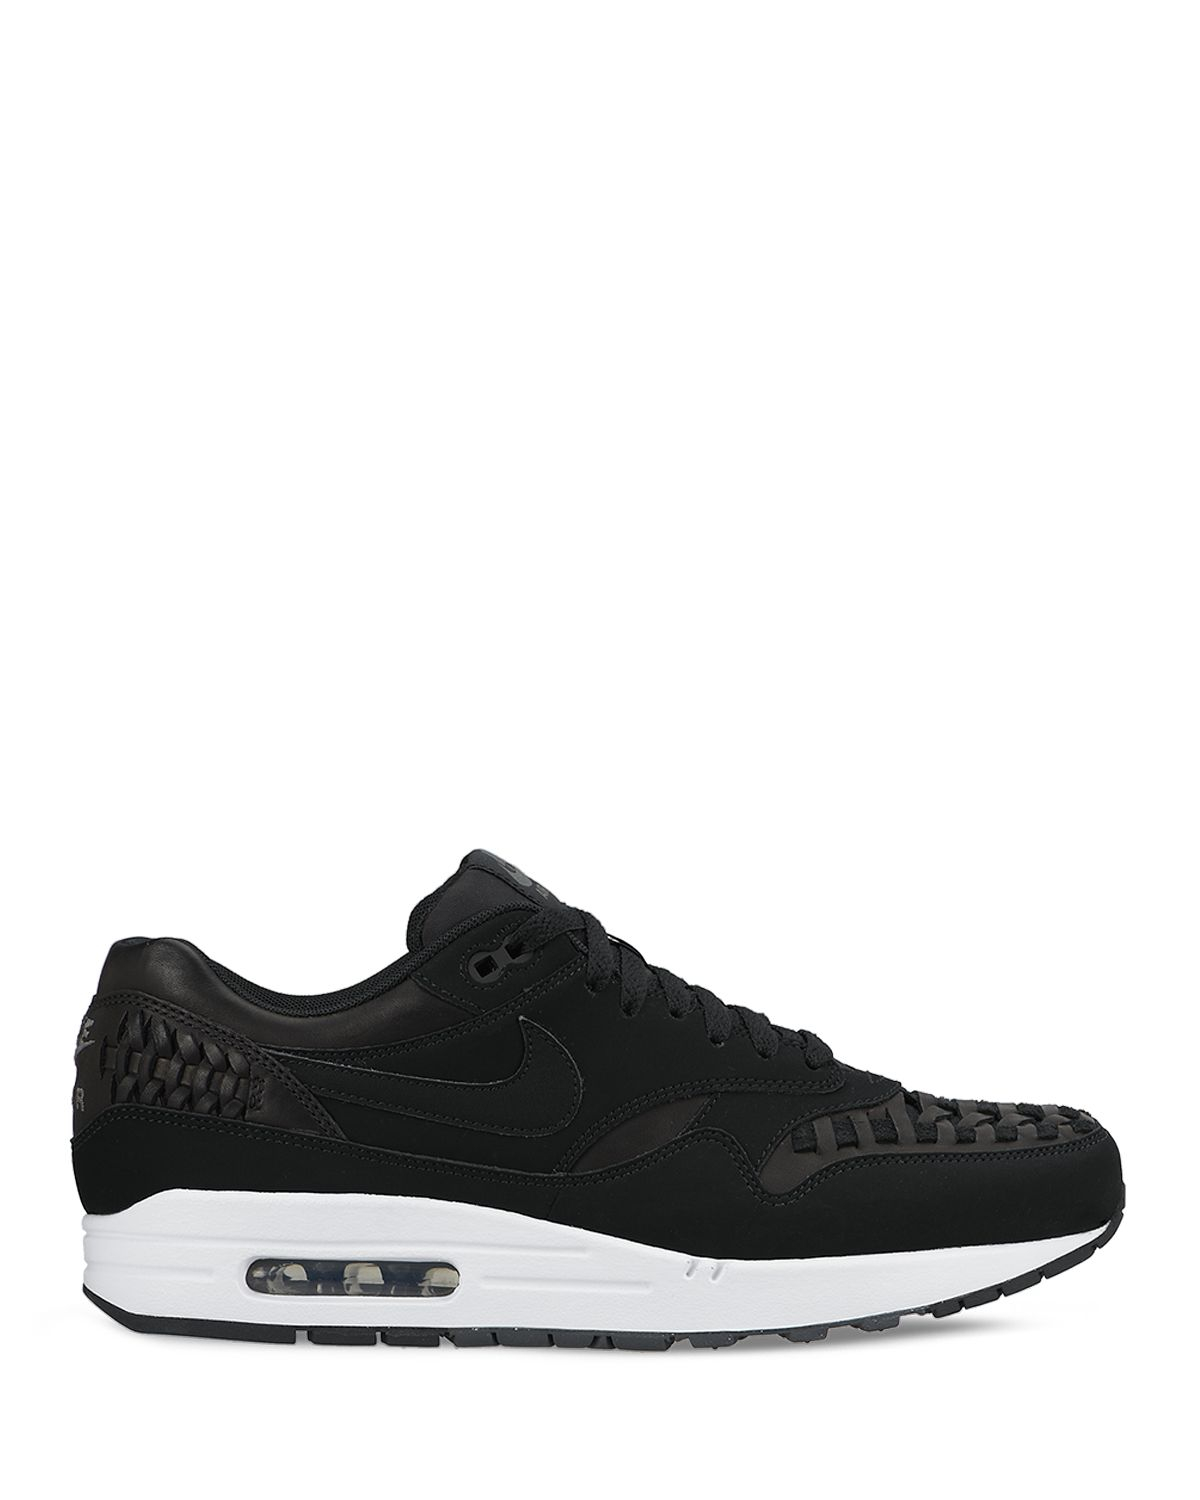 nike air max 1 woven leather sneakers in black for men lyst. Black Bedroom Furniture Sets. Home Design Ideas